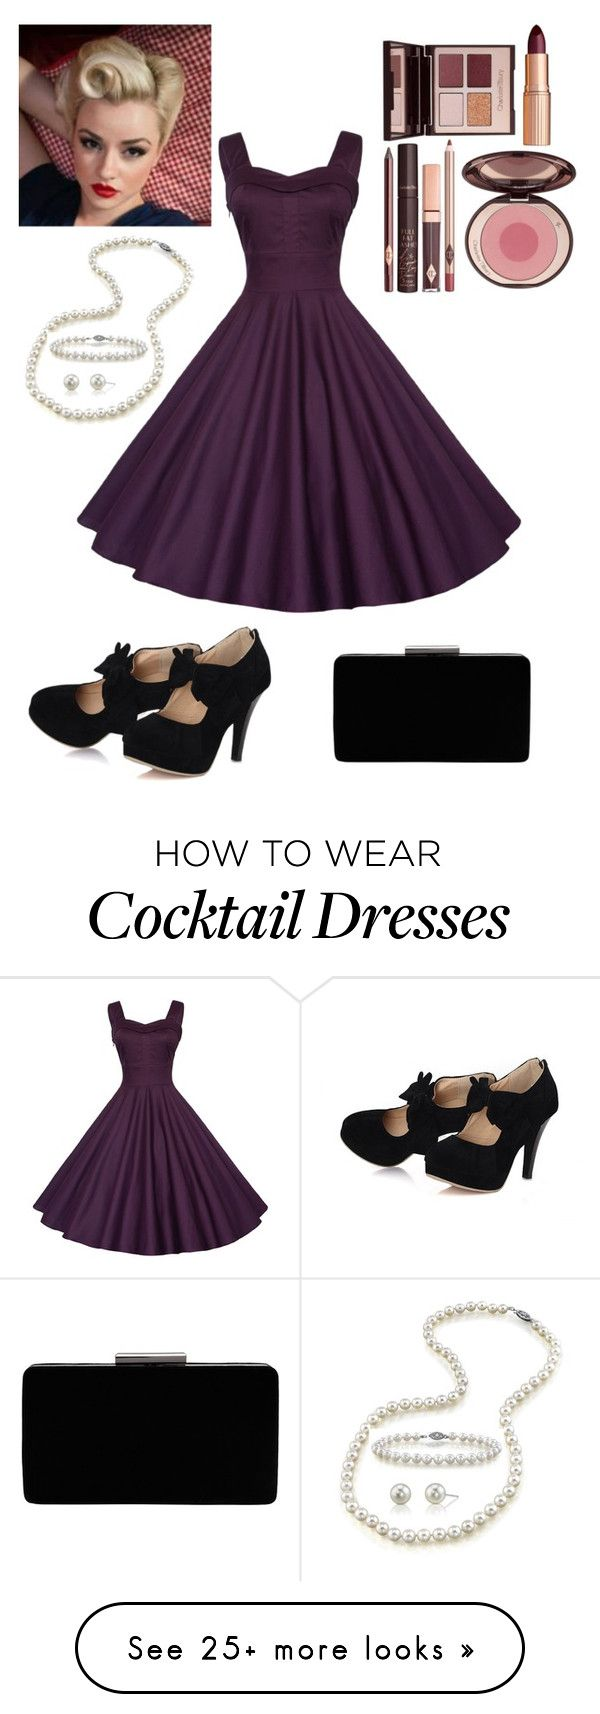 """Take me swing dancing"" by emilyxx33 on Polyvore featuring Charlotte Tilbury, John Lewis and vintage"